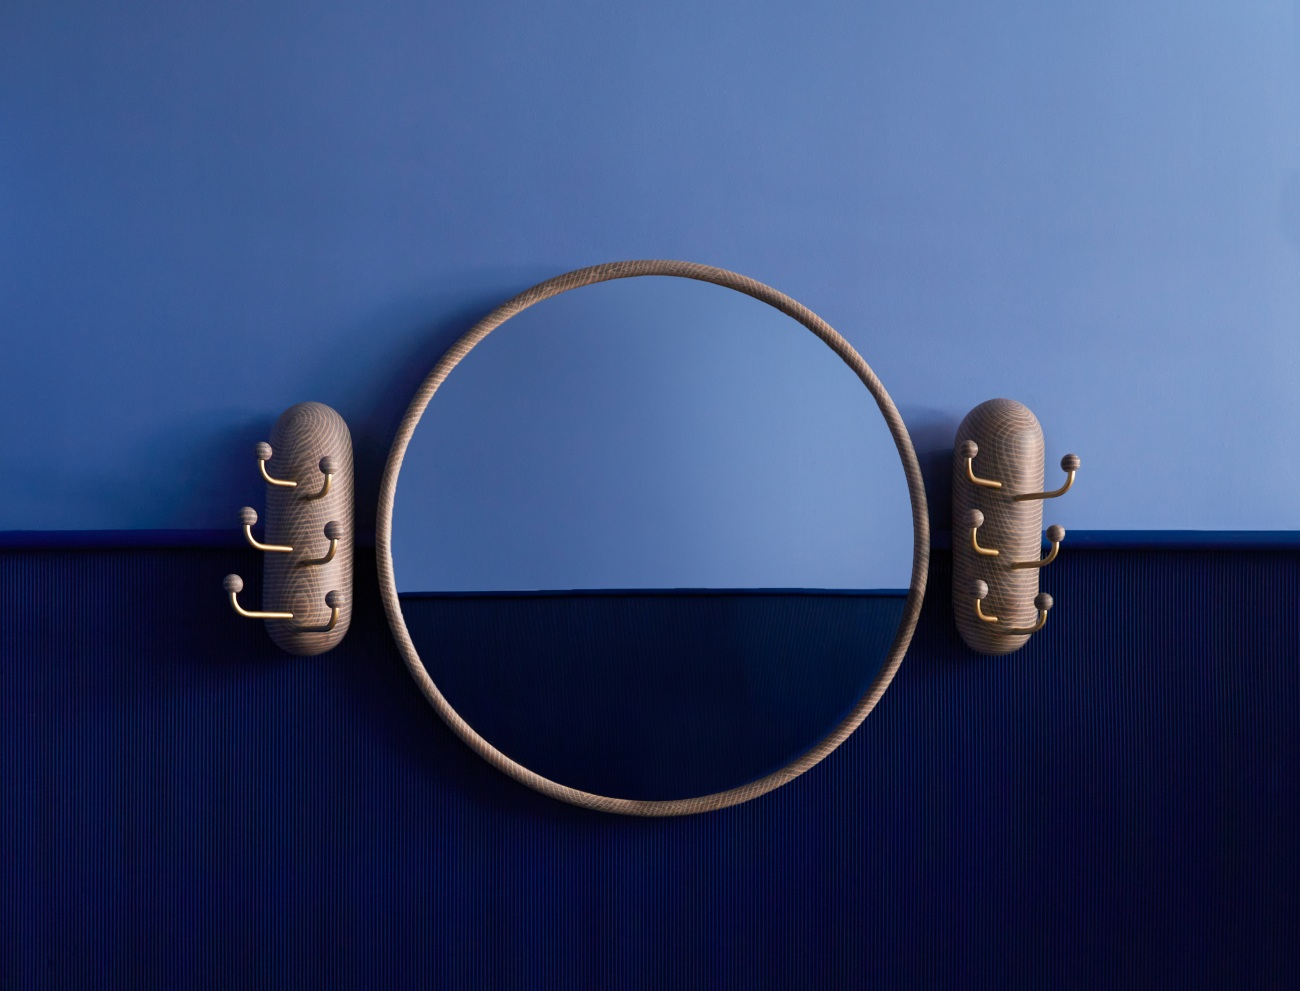 The Oxalino Ring Mirror, with Thing 1 and Thing 2 on either side.